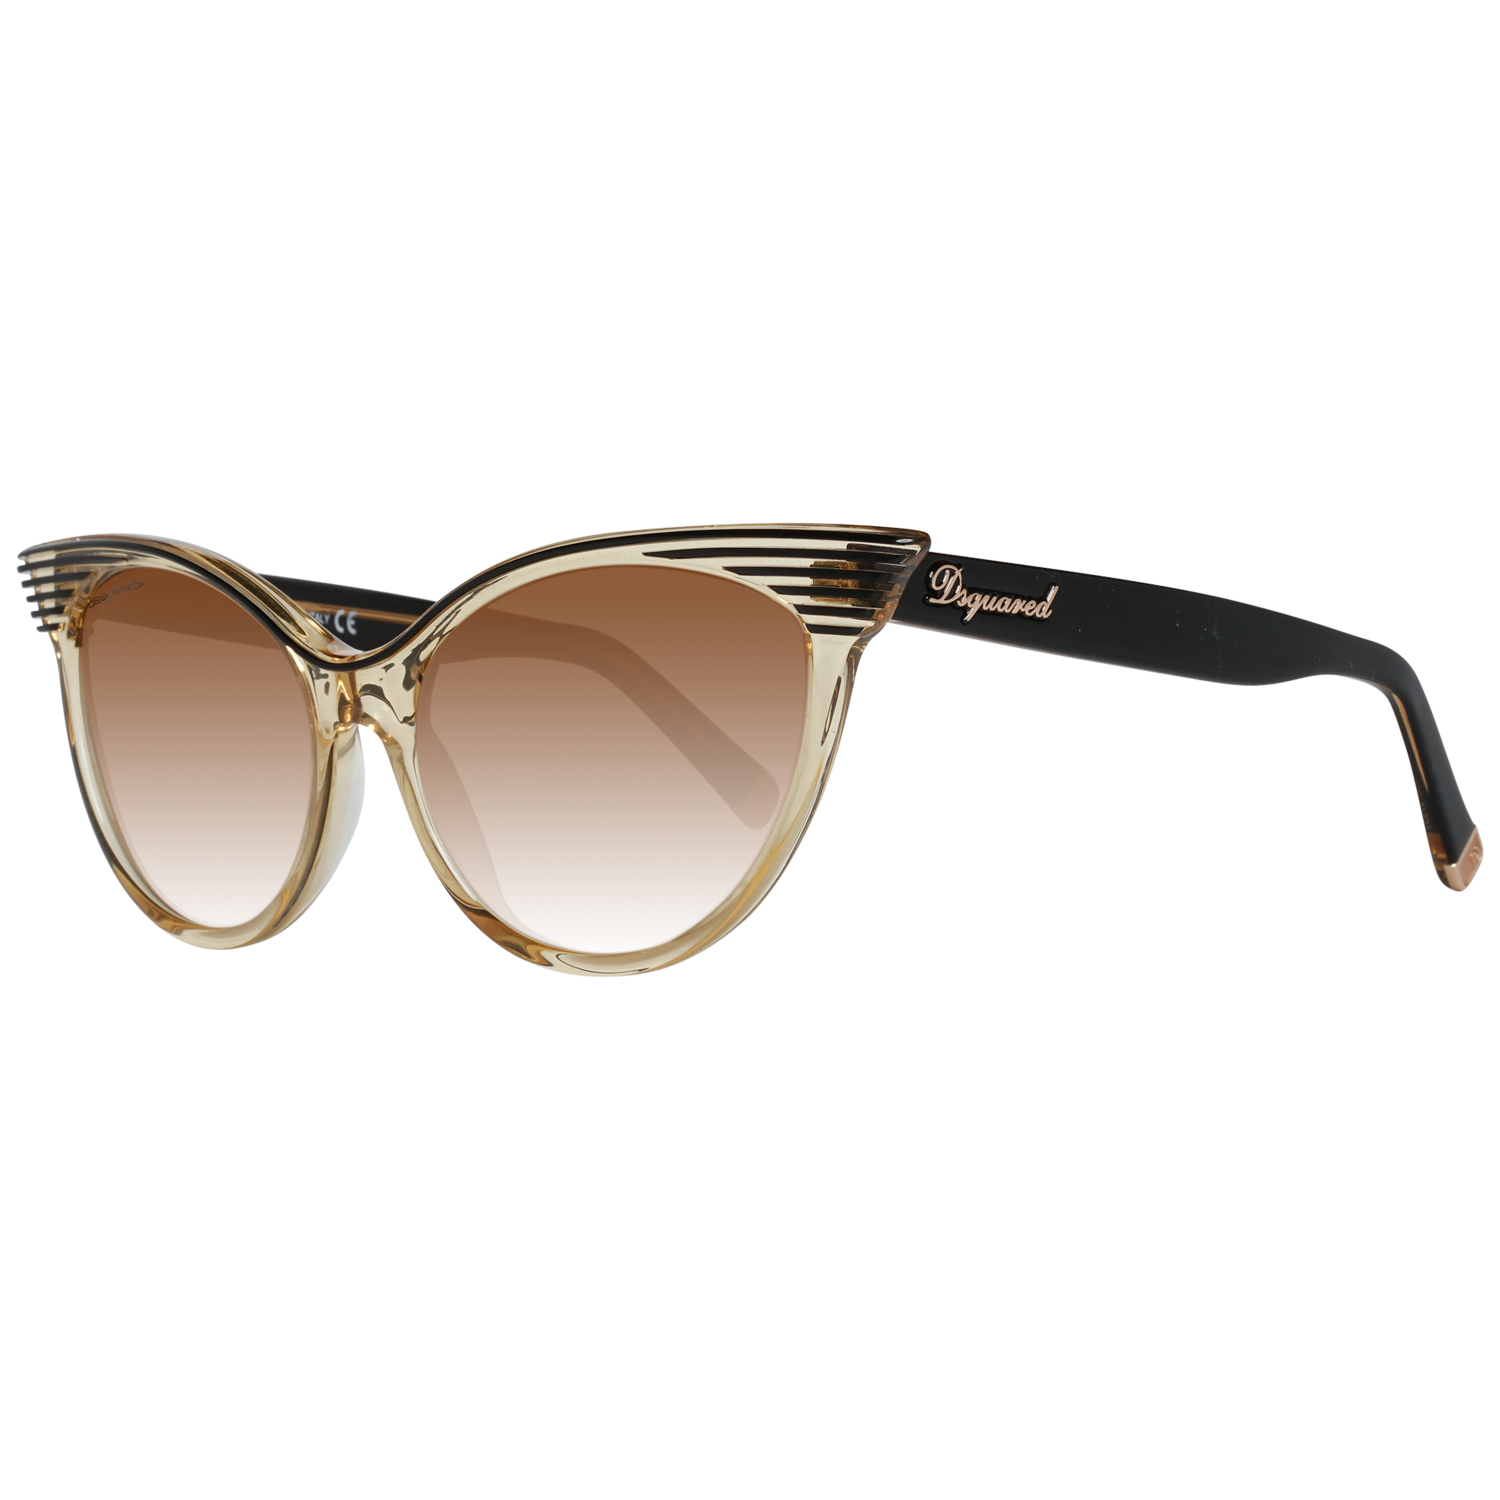 Dsquared2 Sunglasses DQ0101 05F 58 Cream